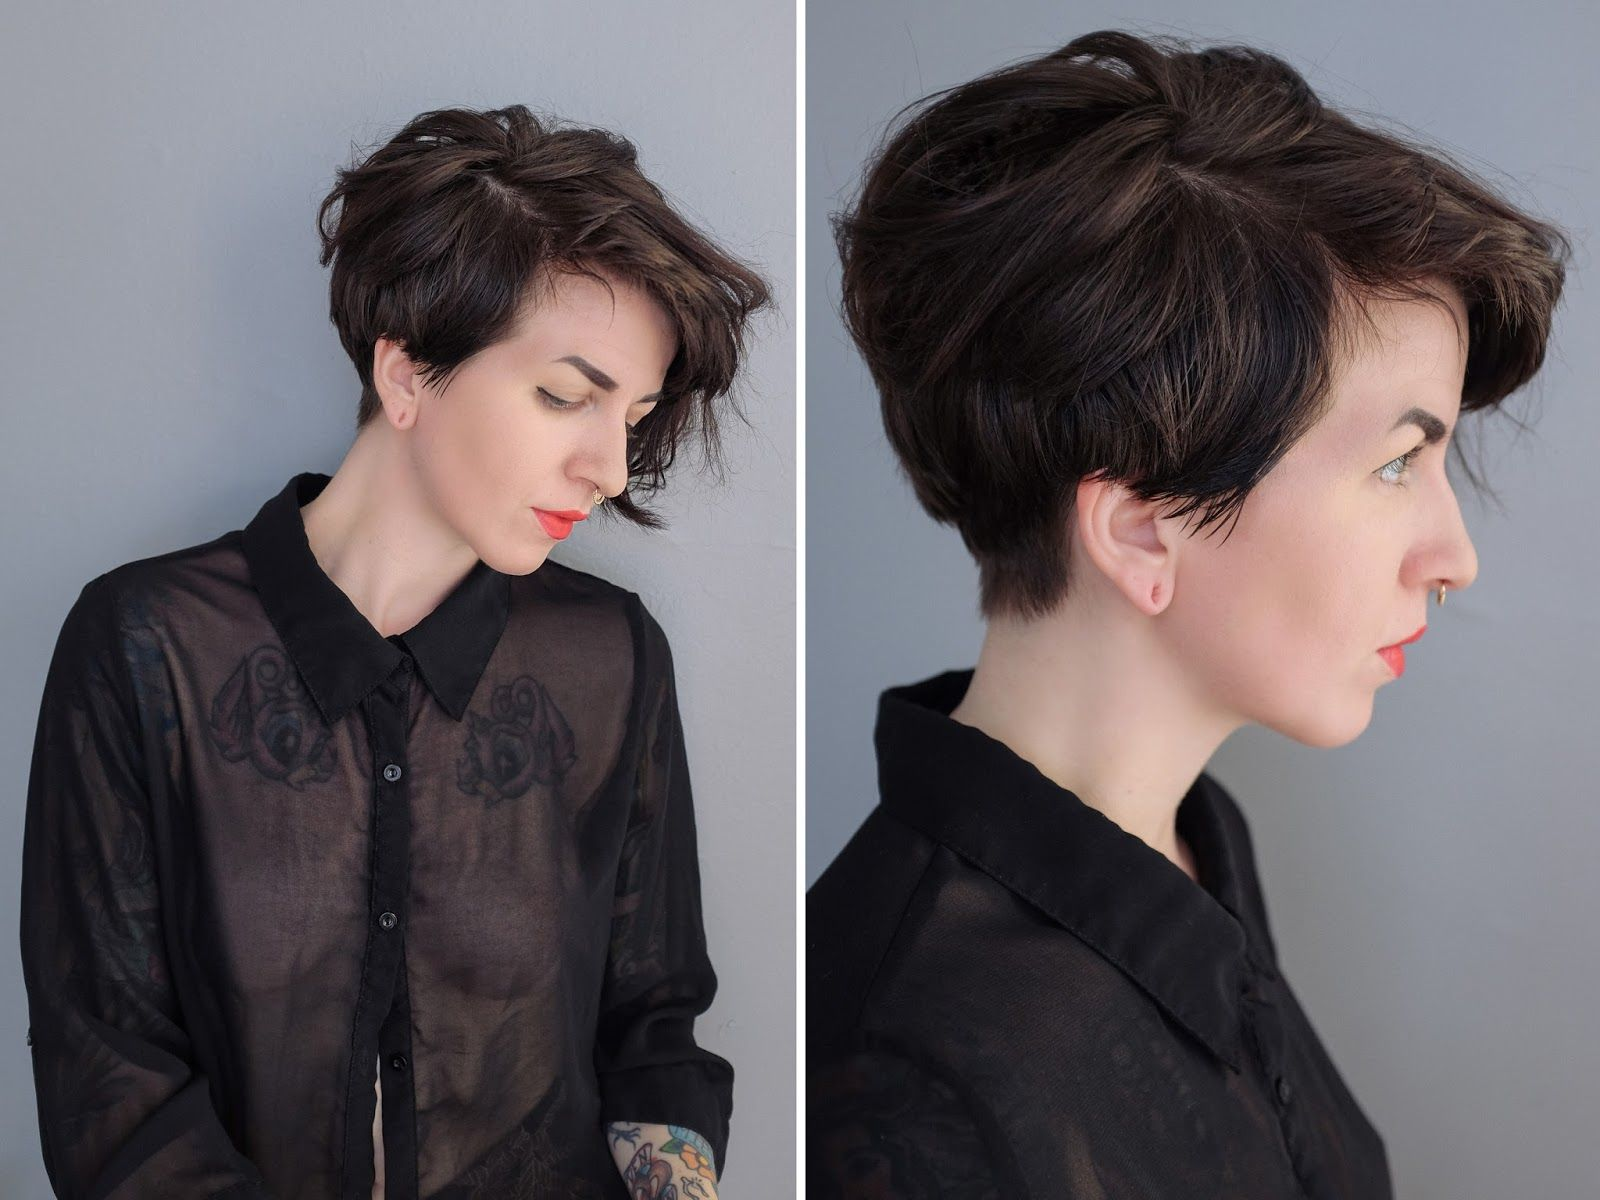 Growing Out An Undercut Growing Out Undercut Hair Styles Undercut Hairstyles